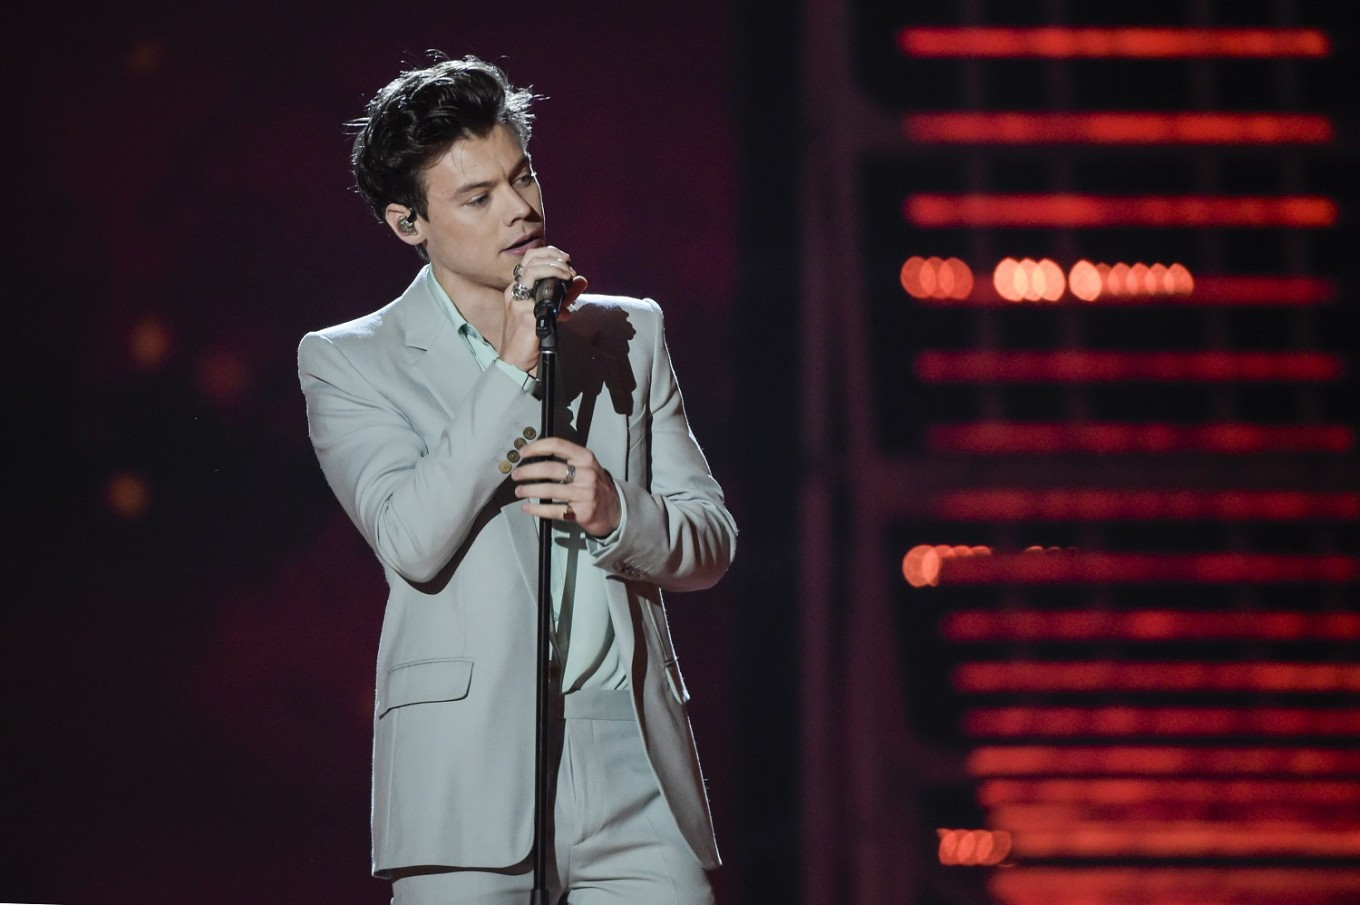 1d76c0ee856 British singer musician Harry Styles performs during the 2017 Victoria s  Secret Fashion Show in Shanghai